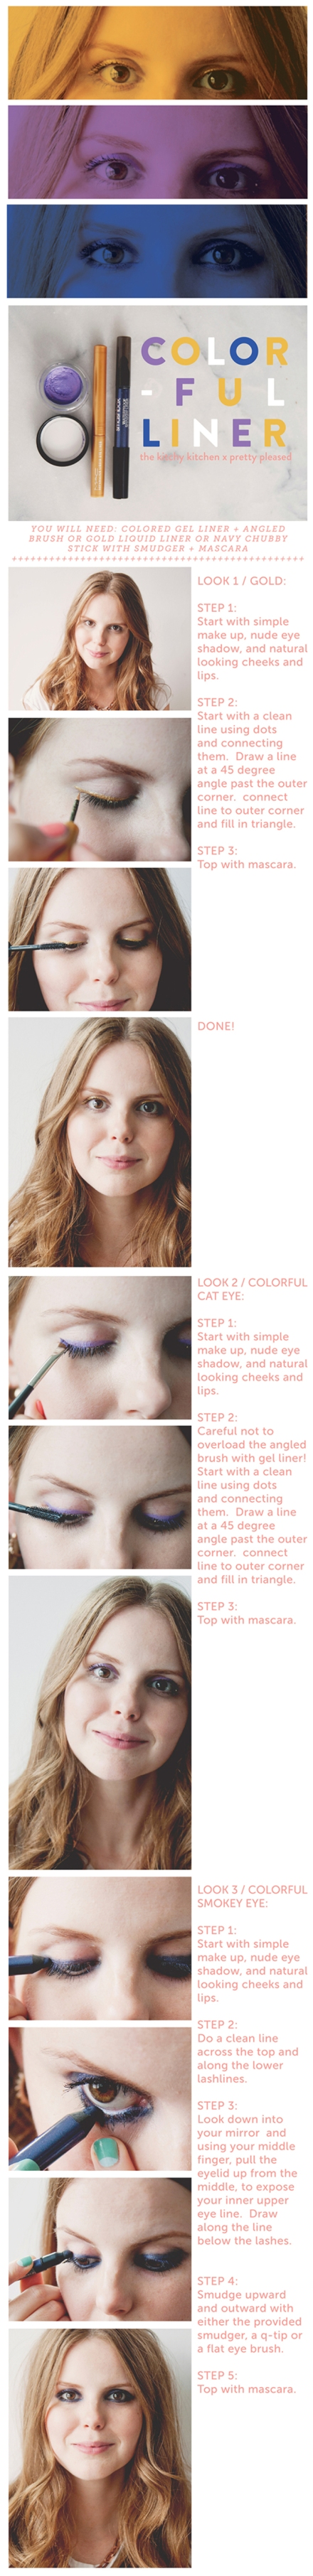 Colored-Eyeliner-small